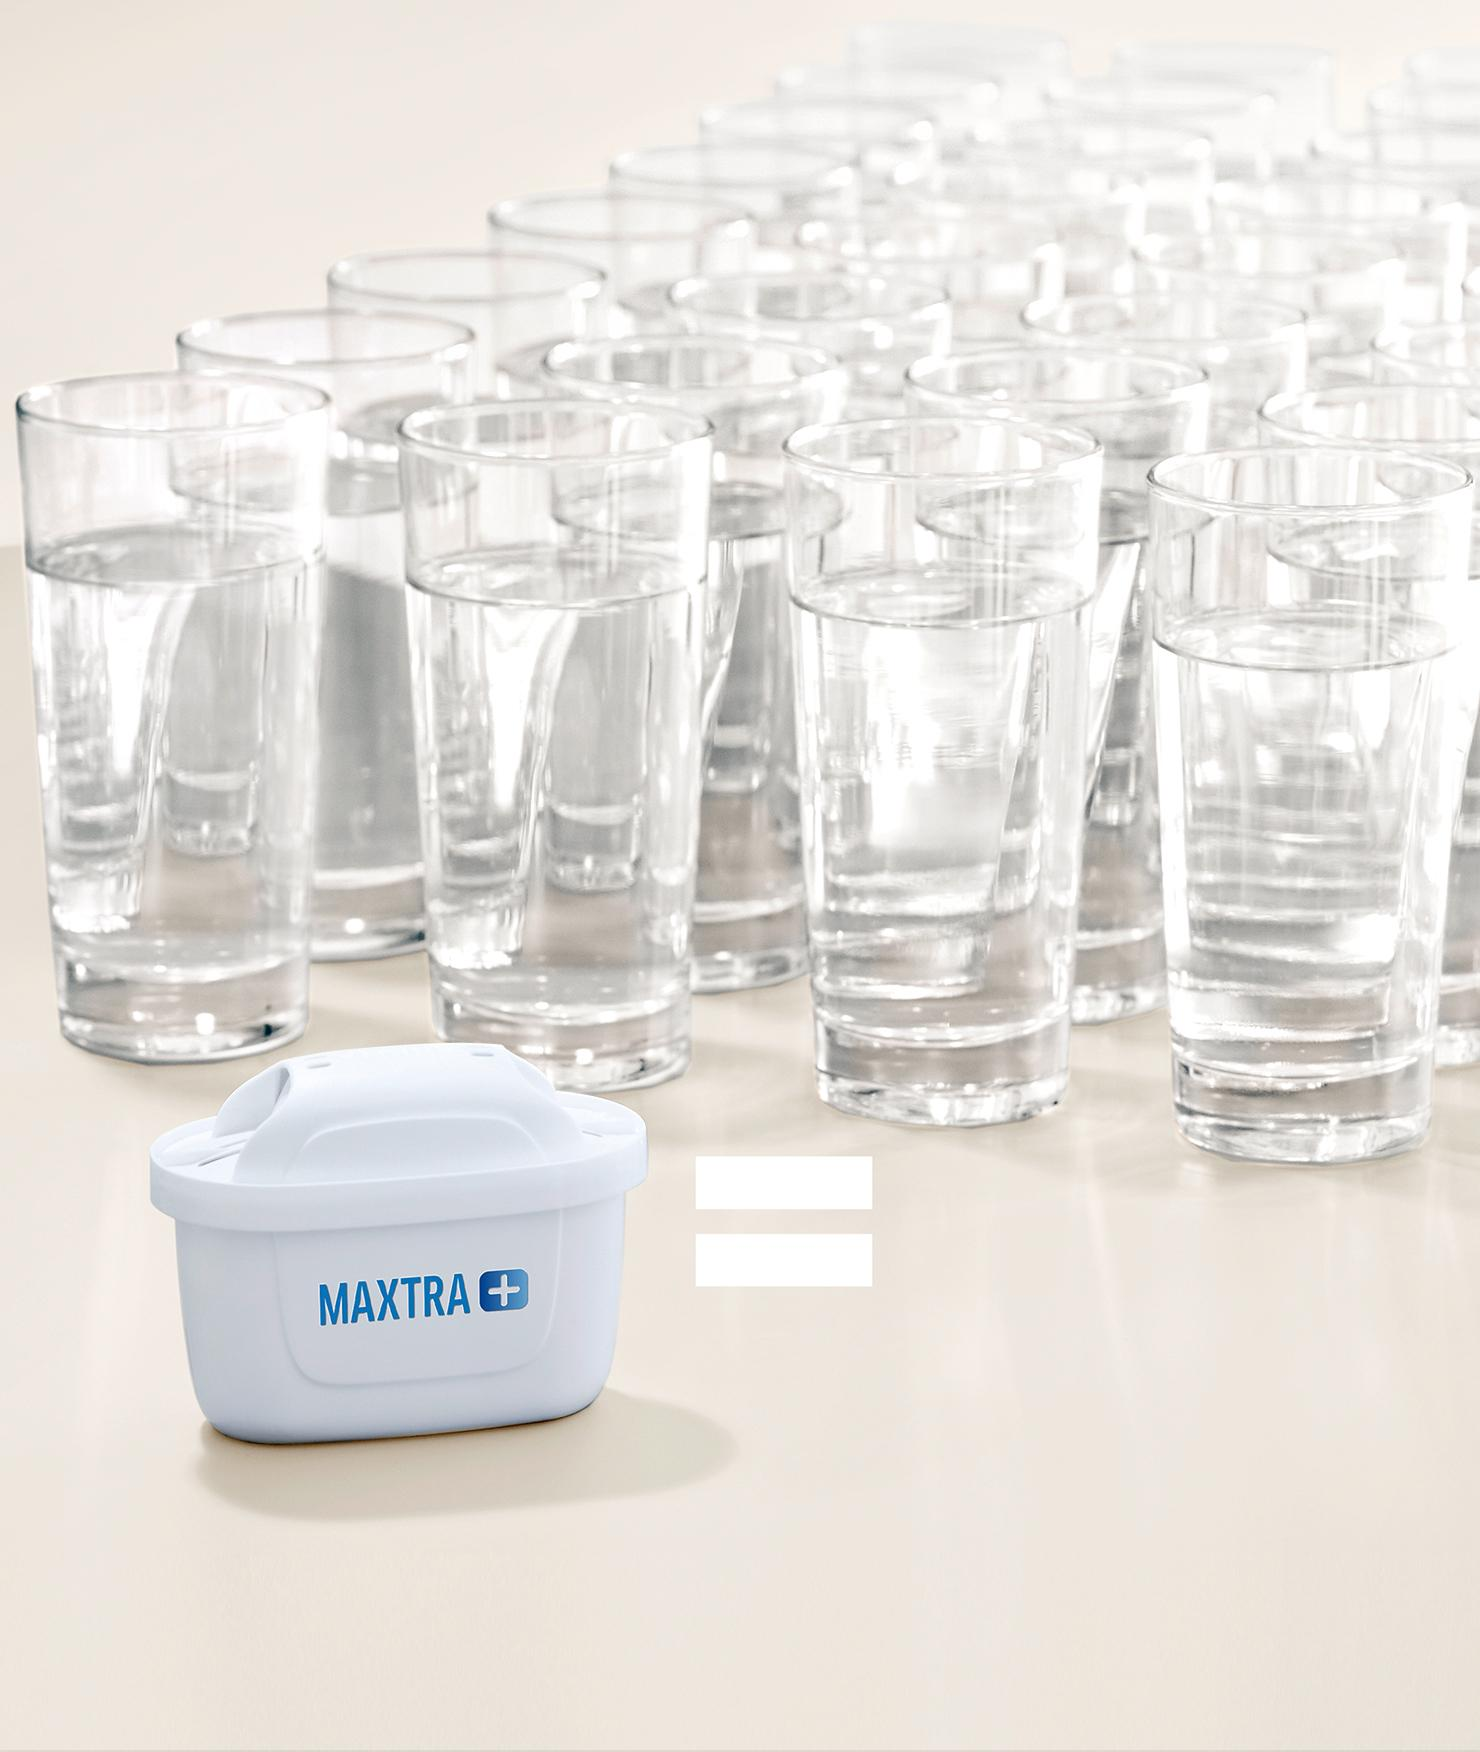 BRITA filters & cartridges MAXTRA+